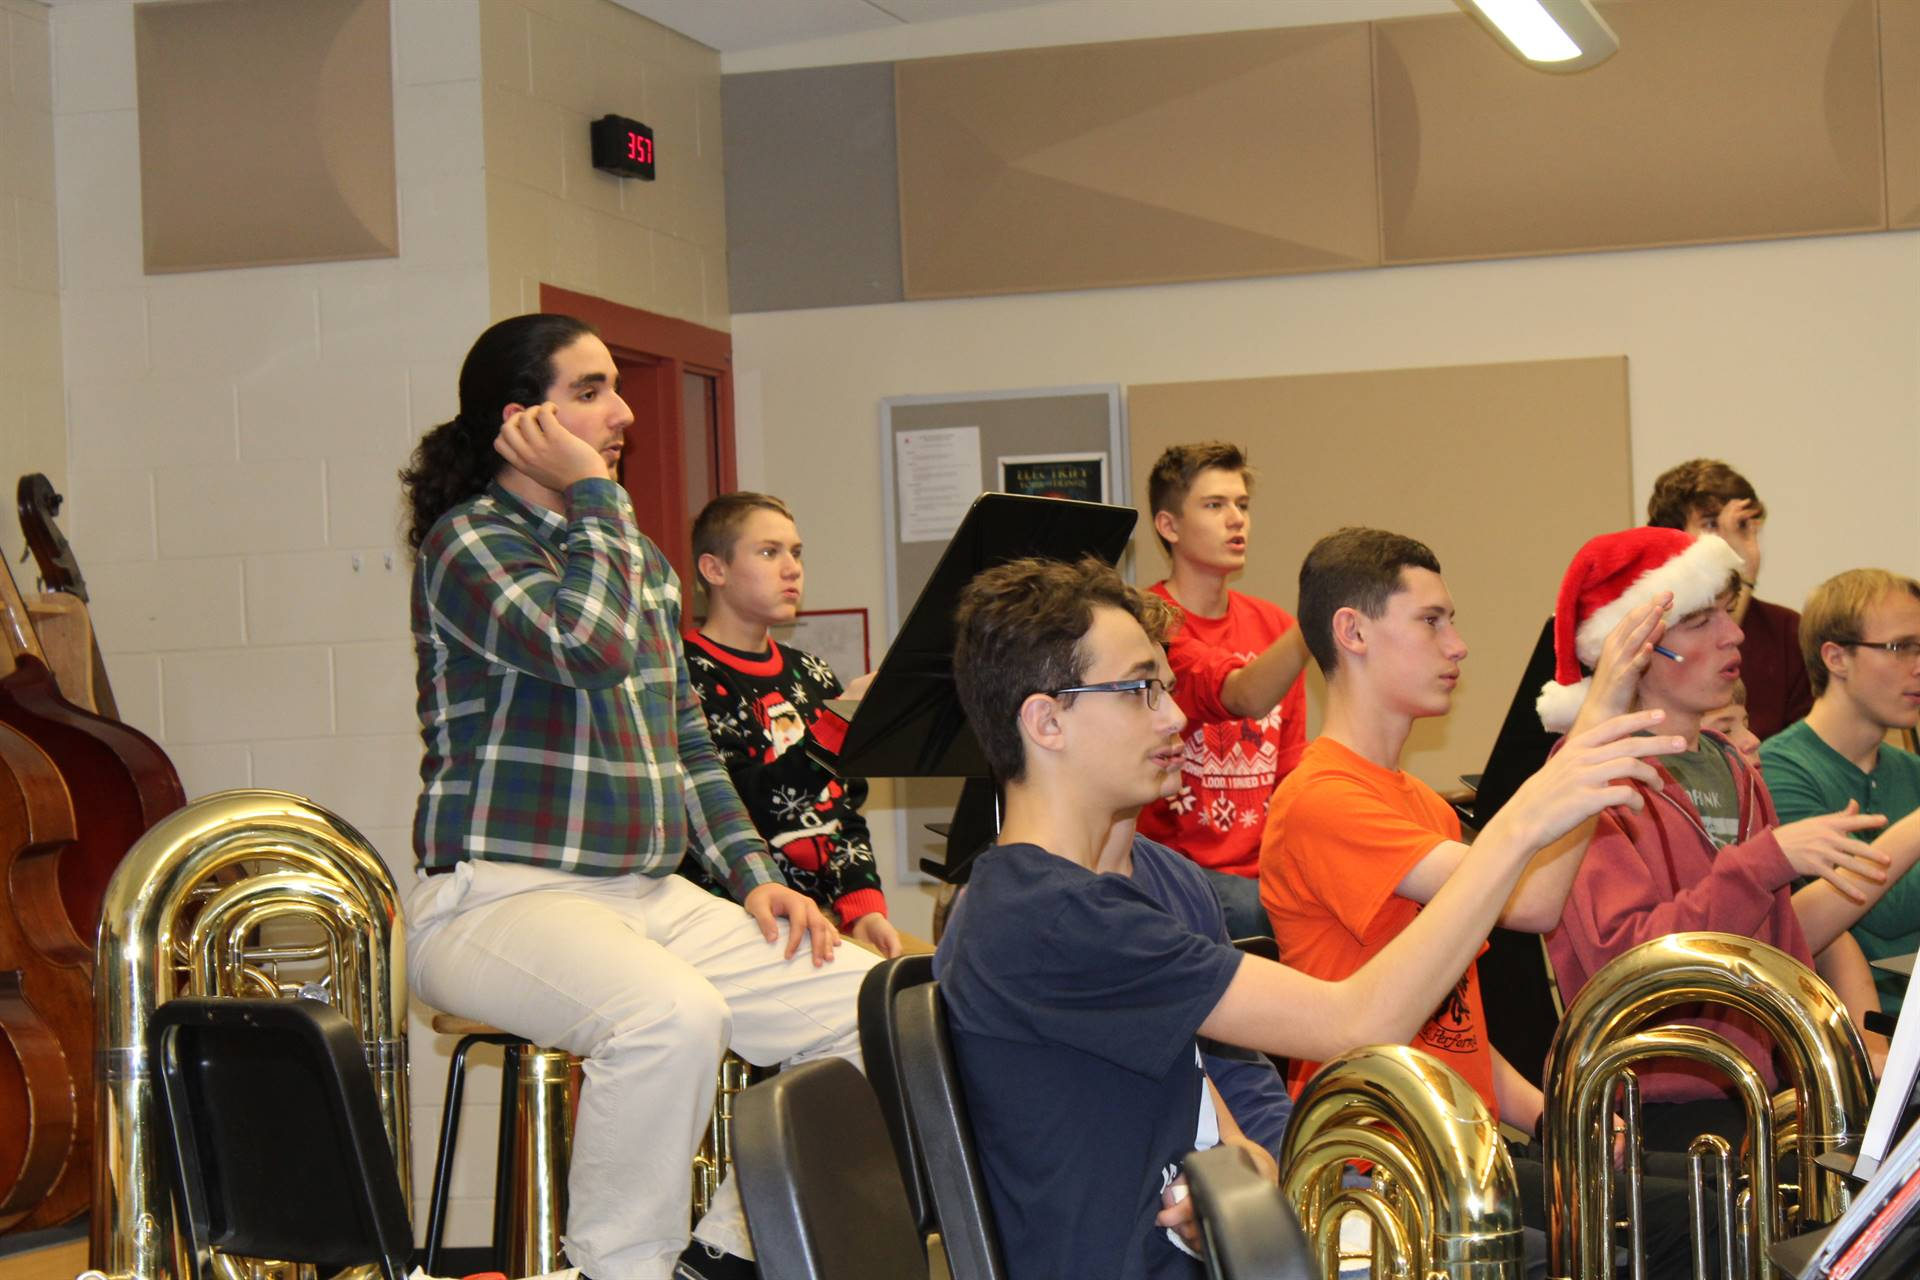 Students participate in breathing exercises in the Master Class